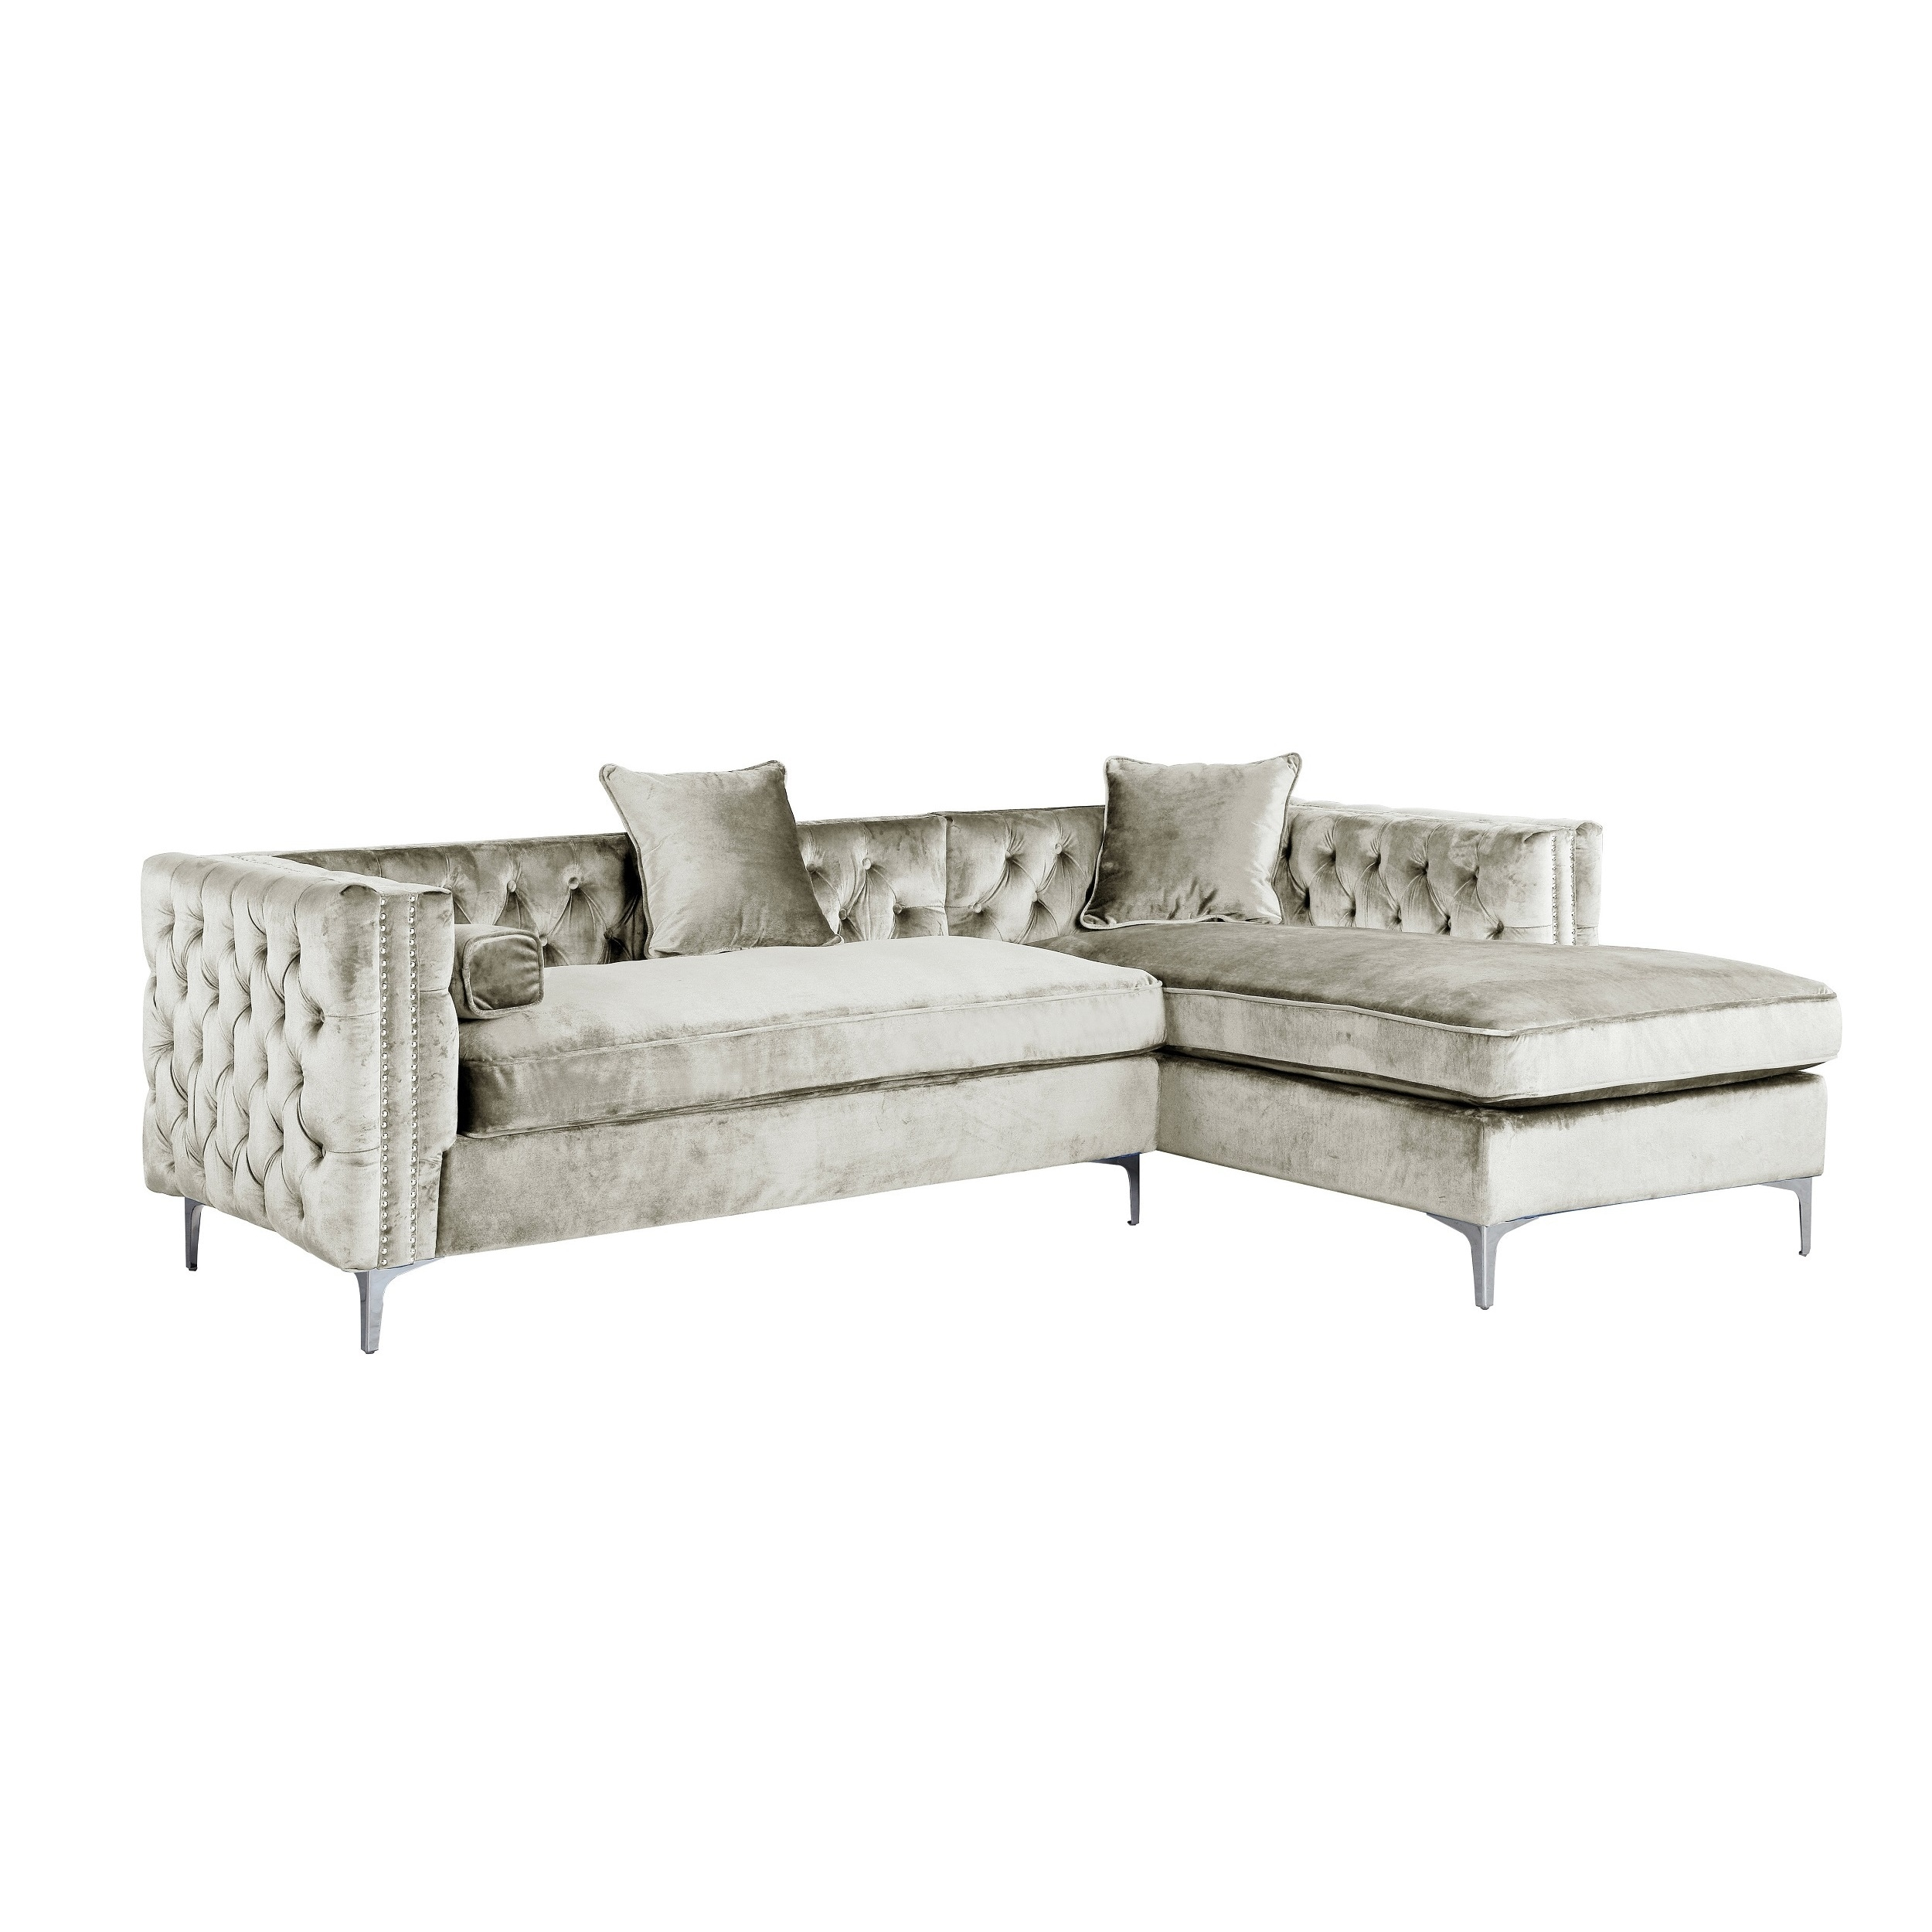 Shop Chic Home Monet Button Tufted With Silver Nailhead Trim Metal Y Leg  Left Facing Sectional Sofa, Silver   On Sale   Free Shipping Today    Overstock.com ...